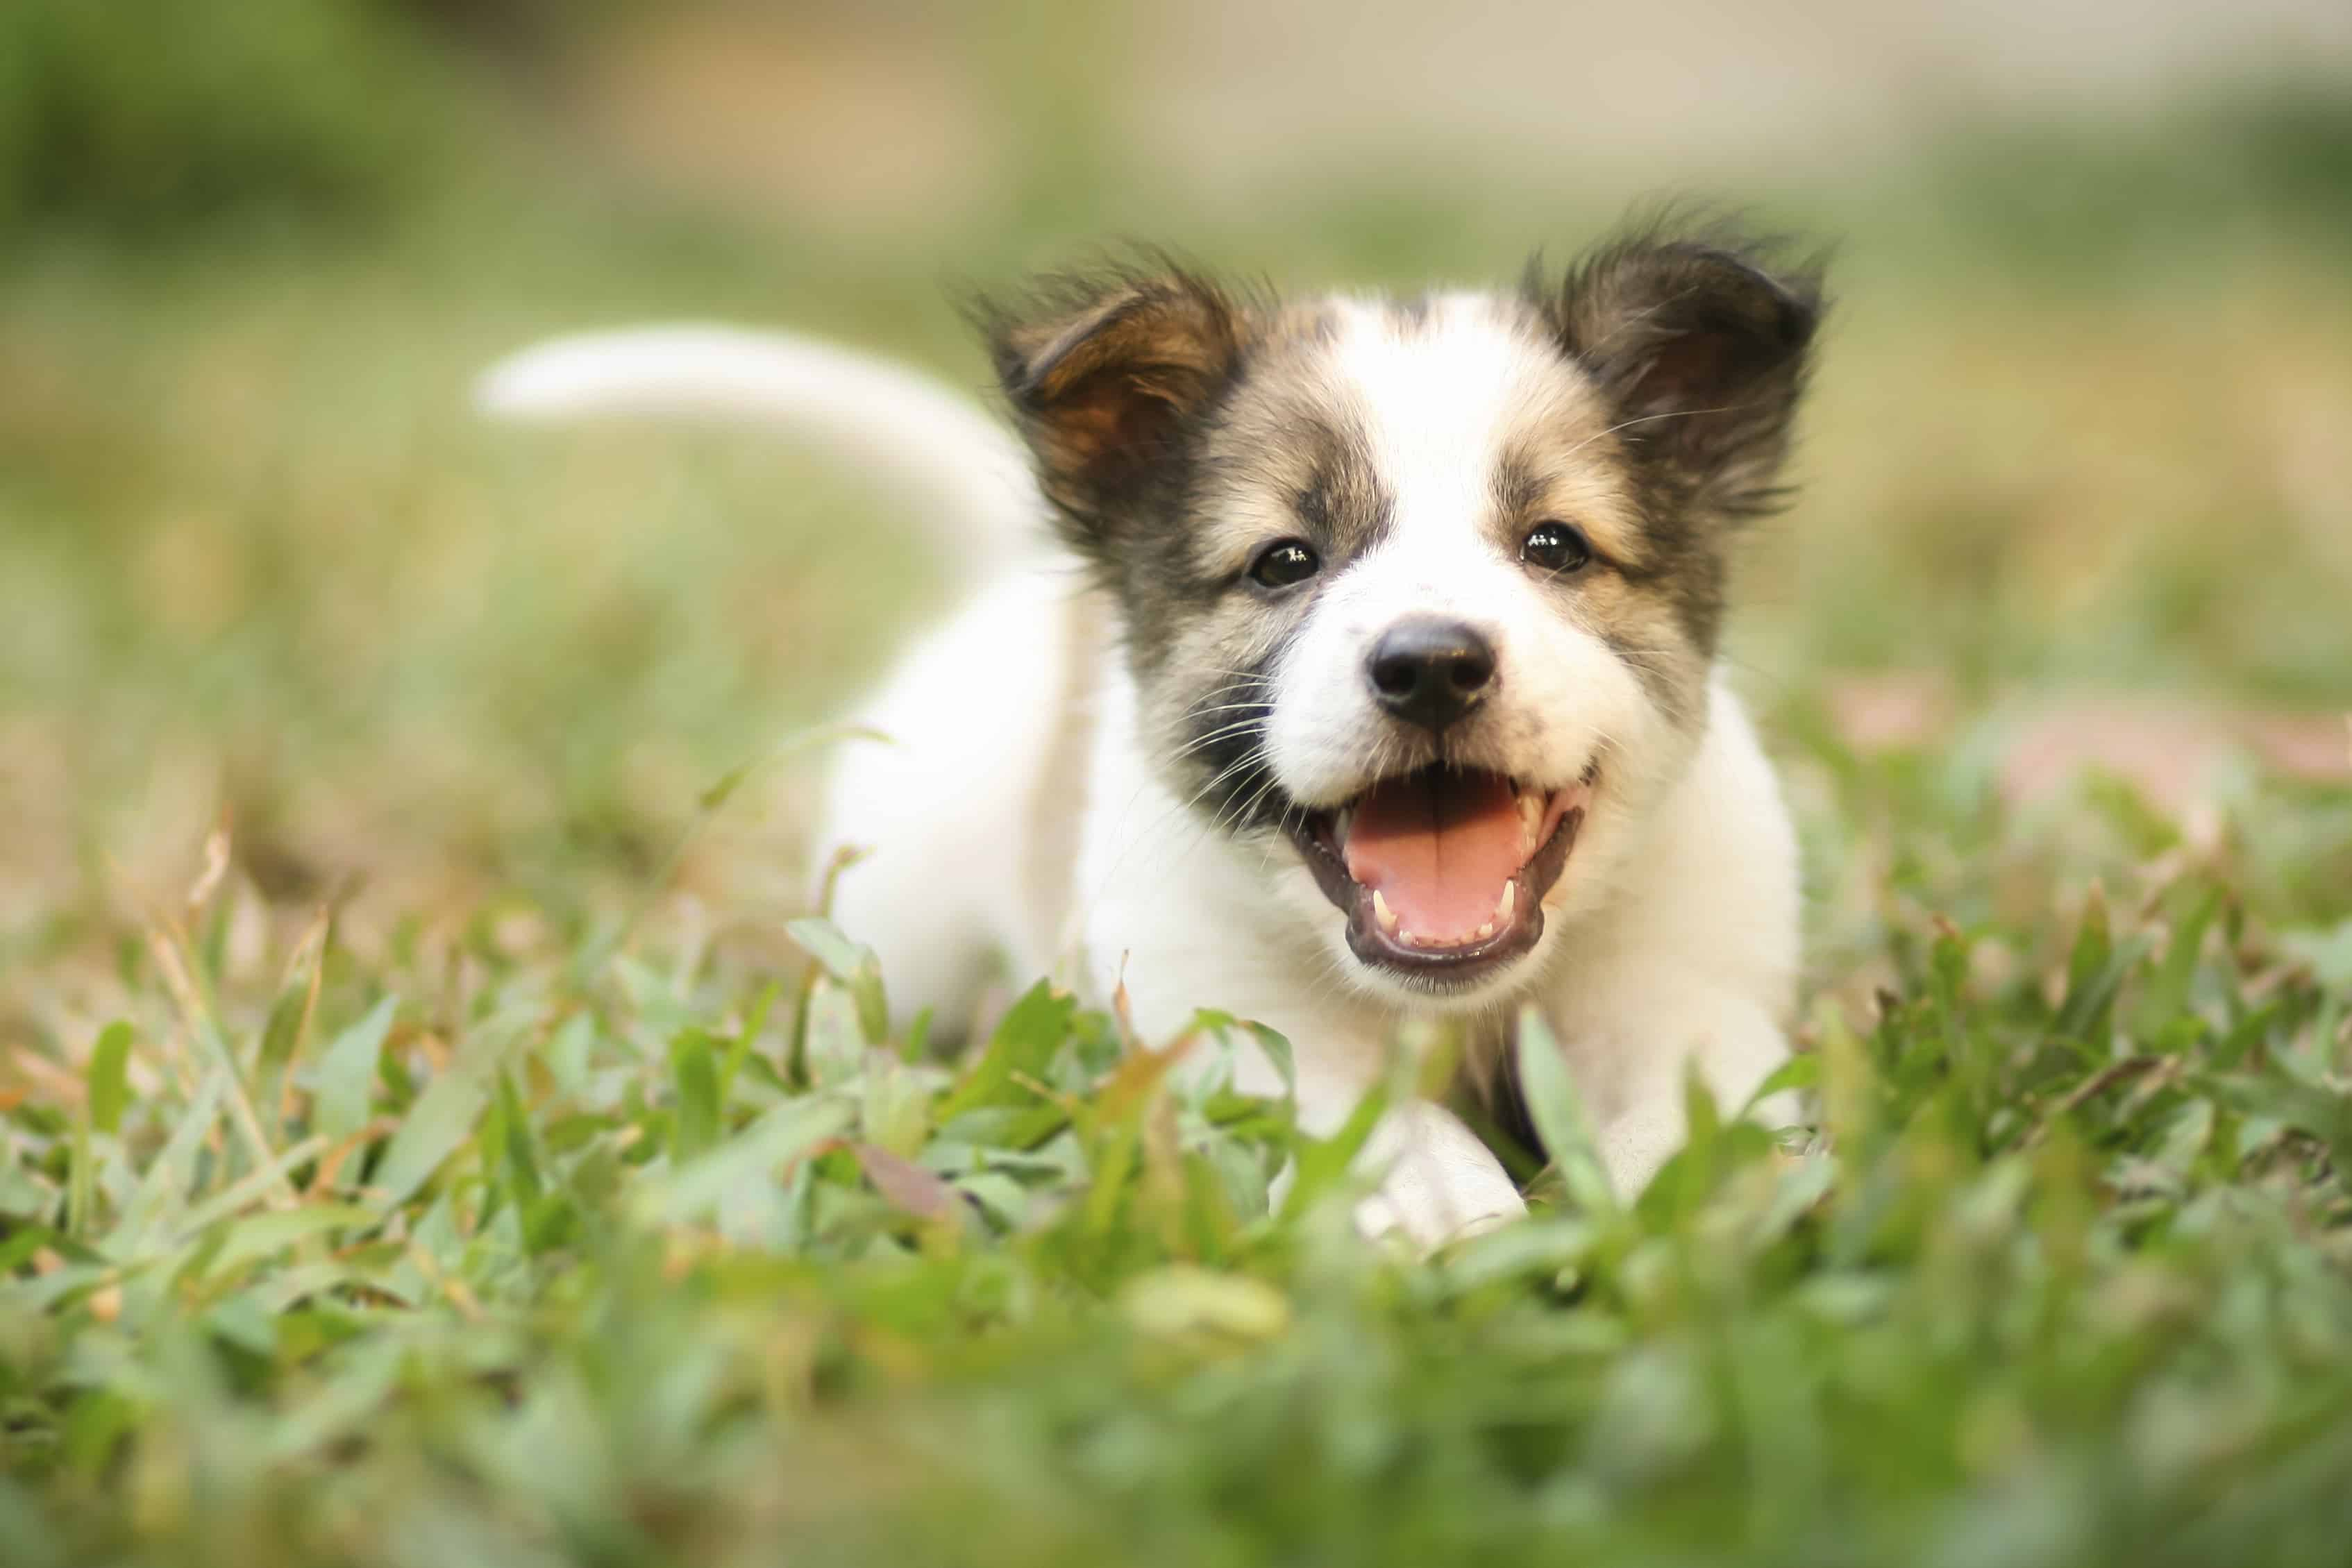 Consider every detail about a new puppy before bringing him home